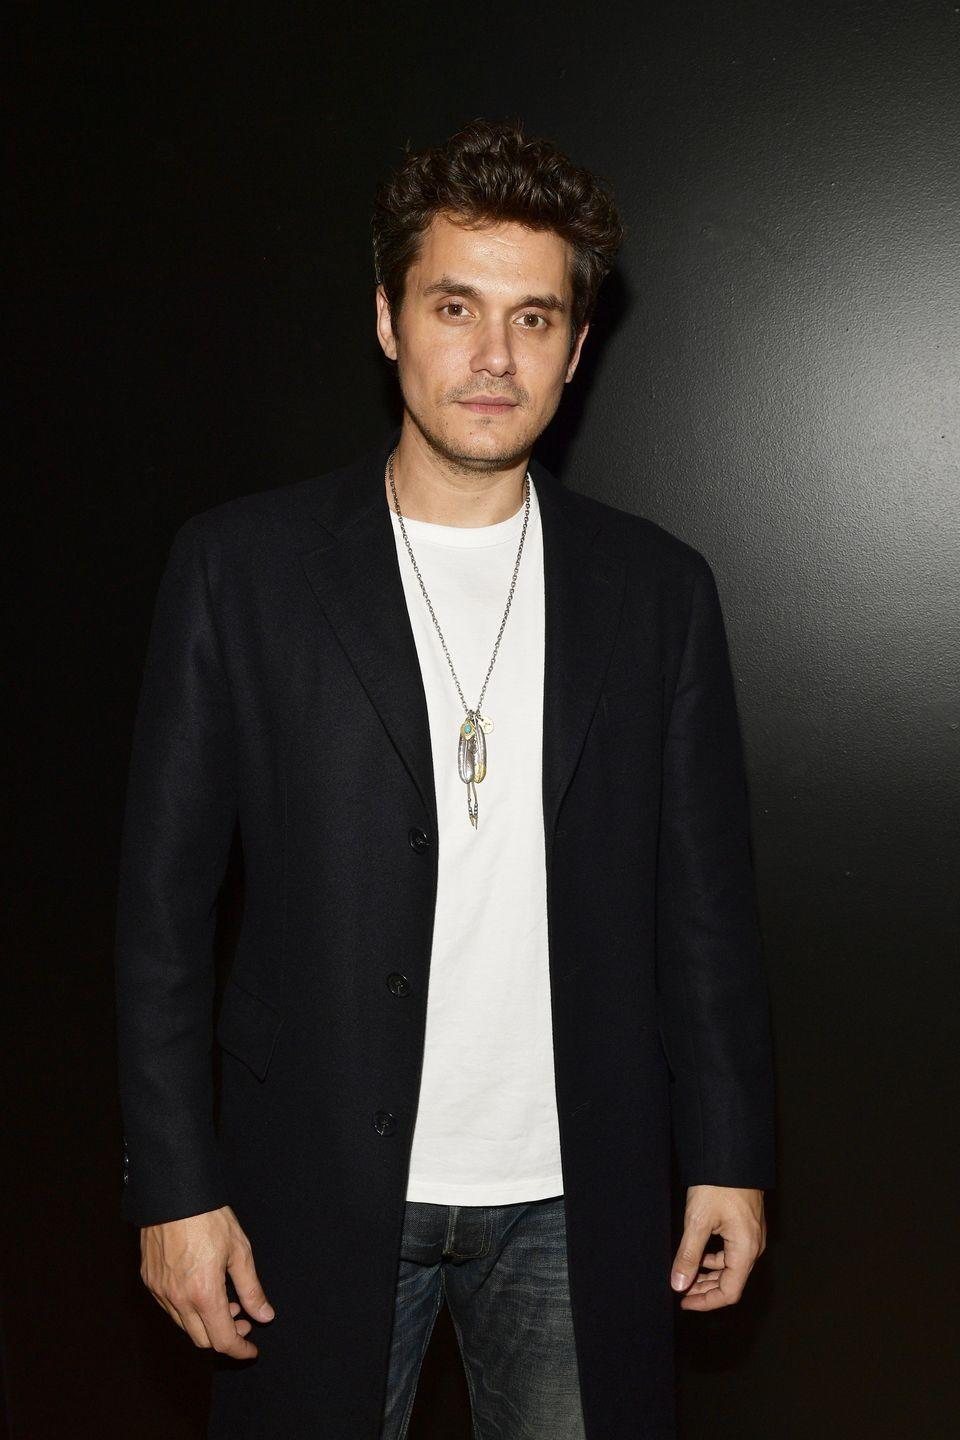 "<p>The 'Gravity' singer told <a href=""https://www.complex.com/style/john-mayer-fear-of-god-jerry-lorenzo-2018-cover-story"" rel=""nofollow noopener"" target=""_blank"" data-ylk=""slk:Complex"" class=""link rapid-noclick-resp"">Complex</a> magazine in 2018 that it was after Drake's 30th birthday party and a six day hangover than he decided to stop drinking.</p><p>'I looked out the window and I went, ""OK, John, what percentage of your potential would you like to have? Because if you say you'd like 60, and you'd like to spend the other 40 having fun, that's fine,""' he told Complex. '""But what percentage of what is available to you would you like to make happen? There's no wrong answer. What is it?"" I went, ""100.""'</p>"